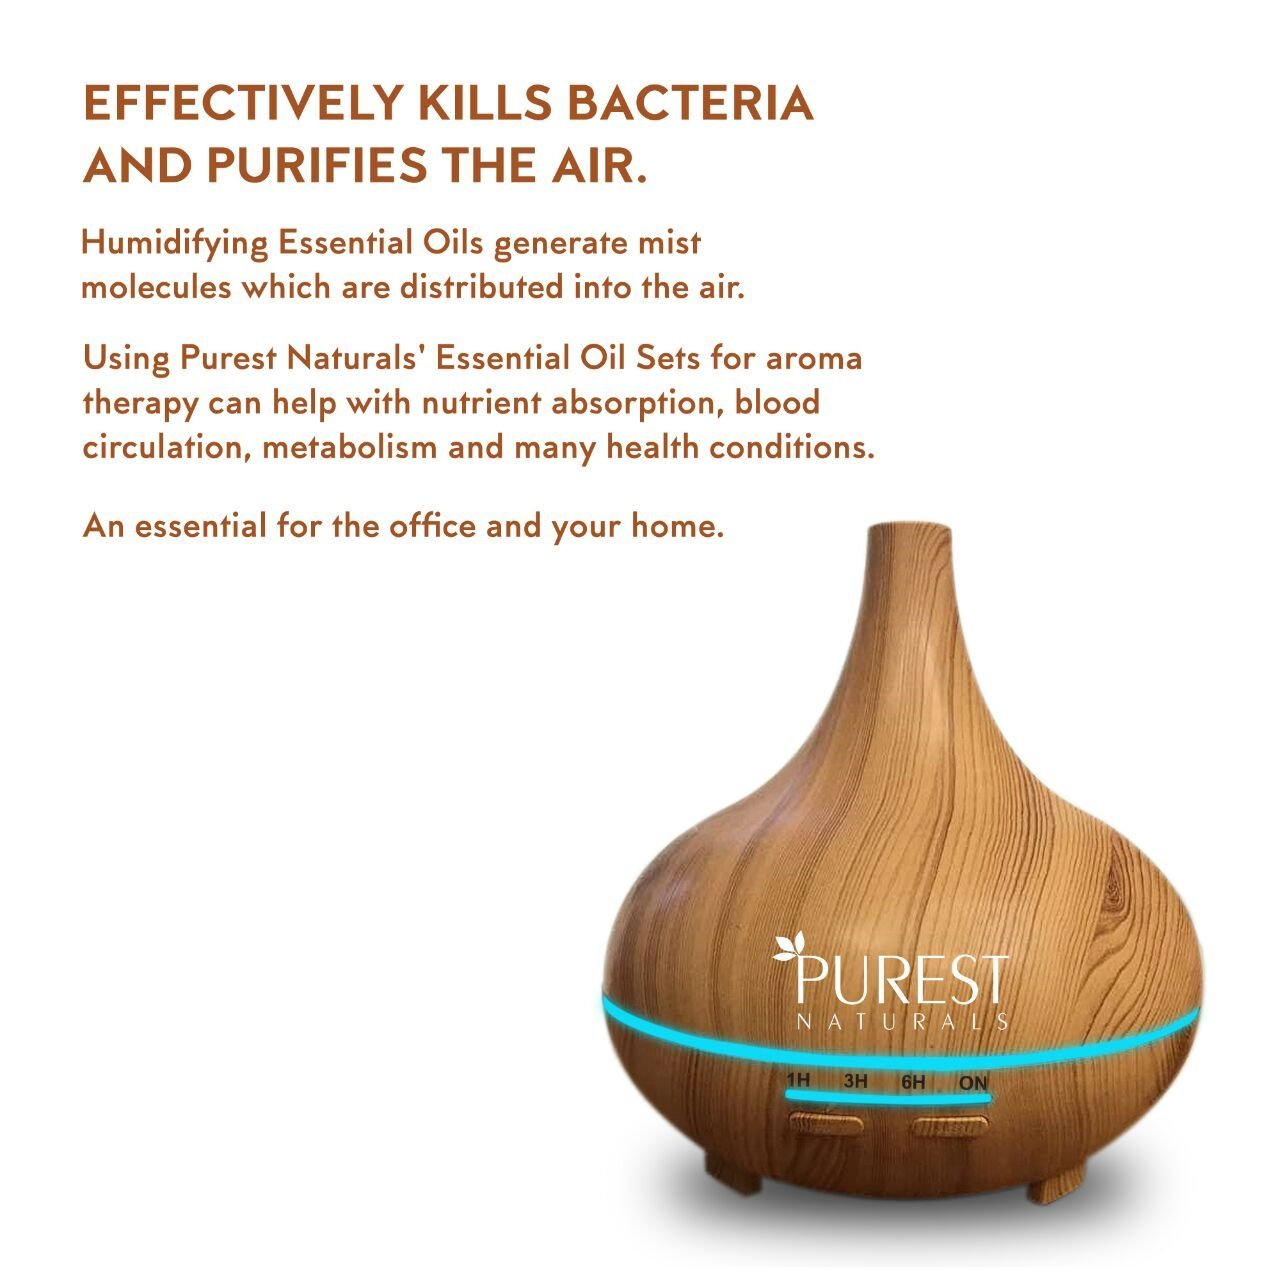 Purest Naturals 300ml Essential Oil Oils Diffuser Ultrasonic Cool Mist Aroma Humidifier - Whisper Quiet Large Aromatherapy Air Purifier For Home Office Bedroom Living Room Yoga - 17 LED Lights